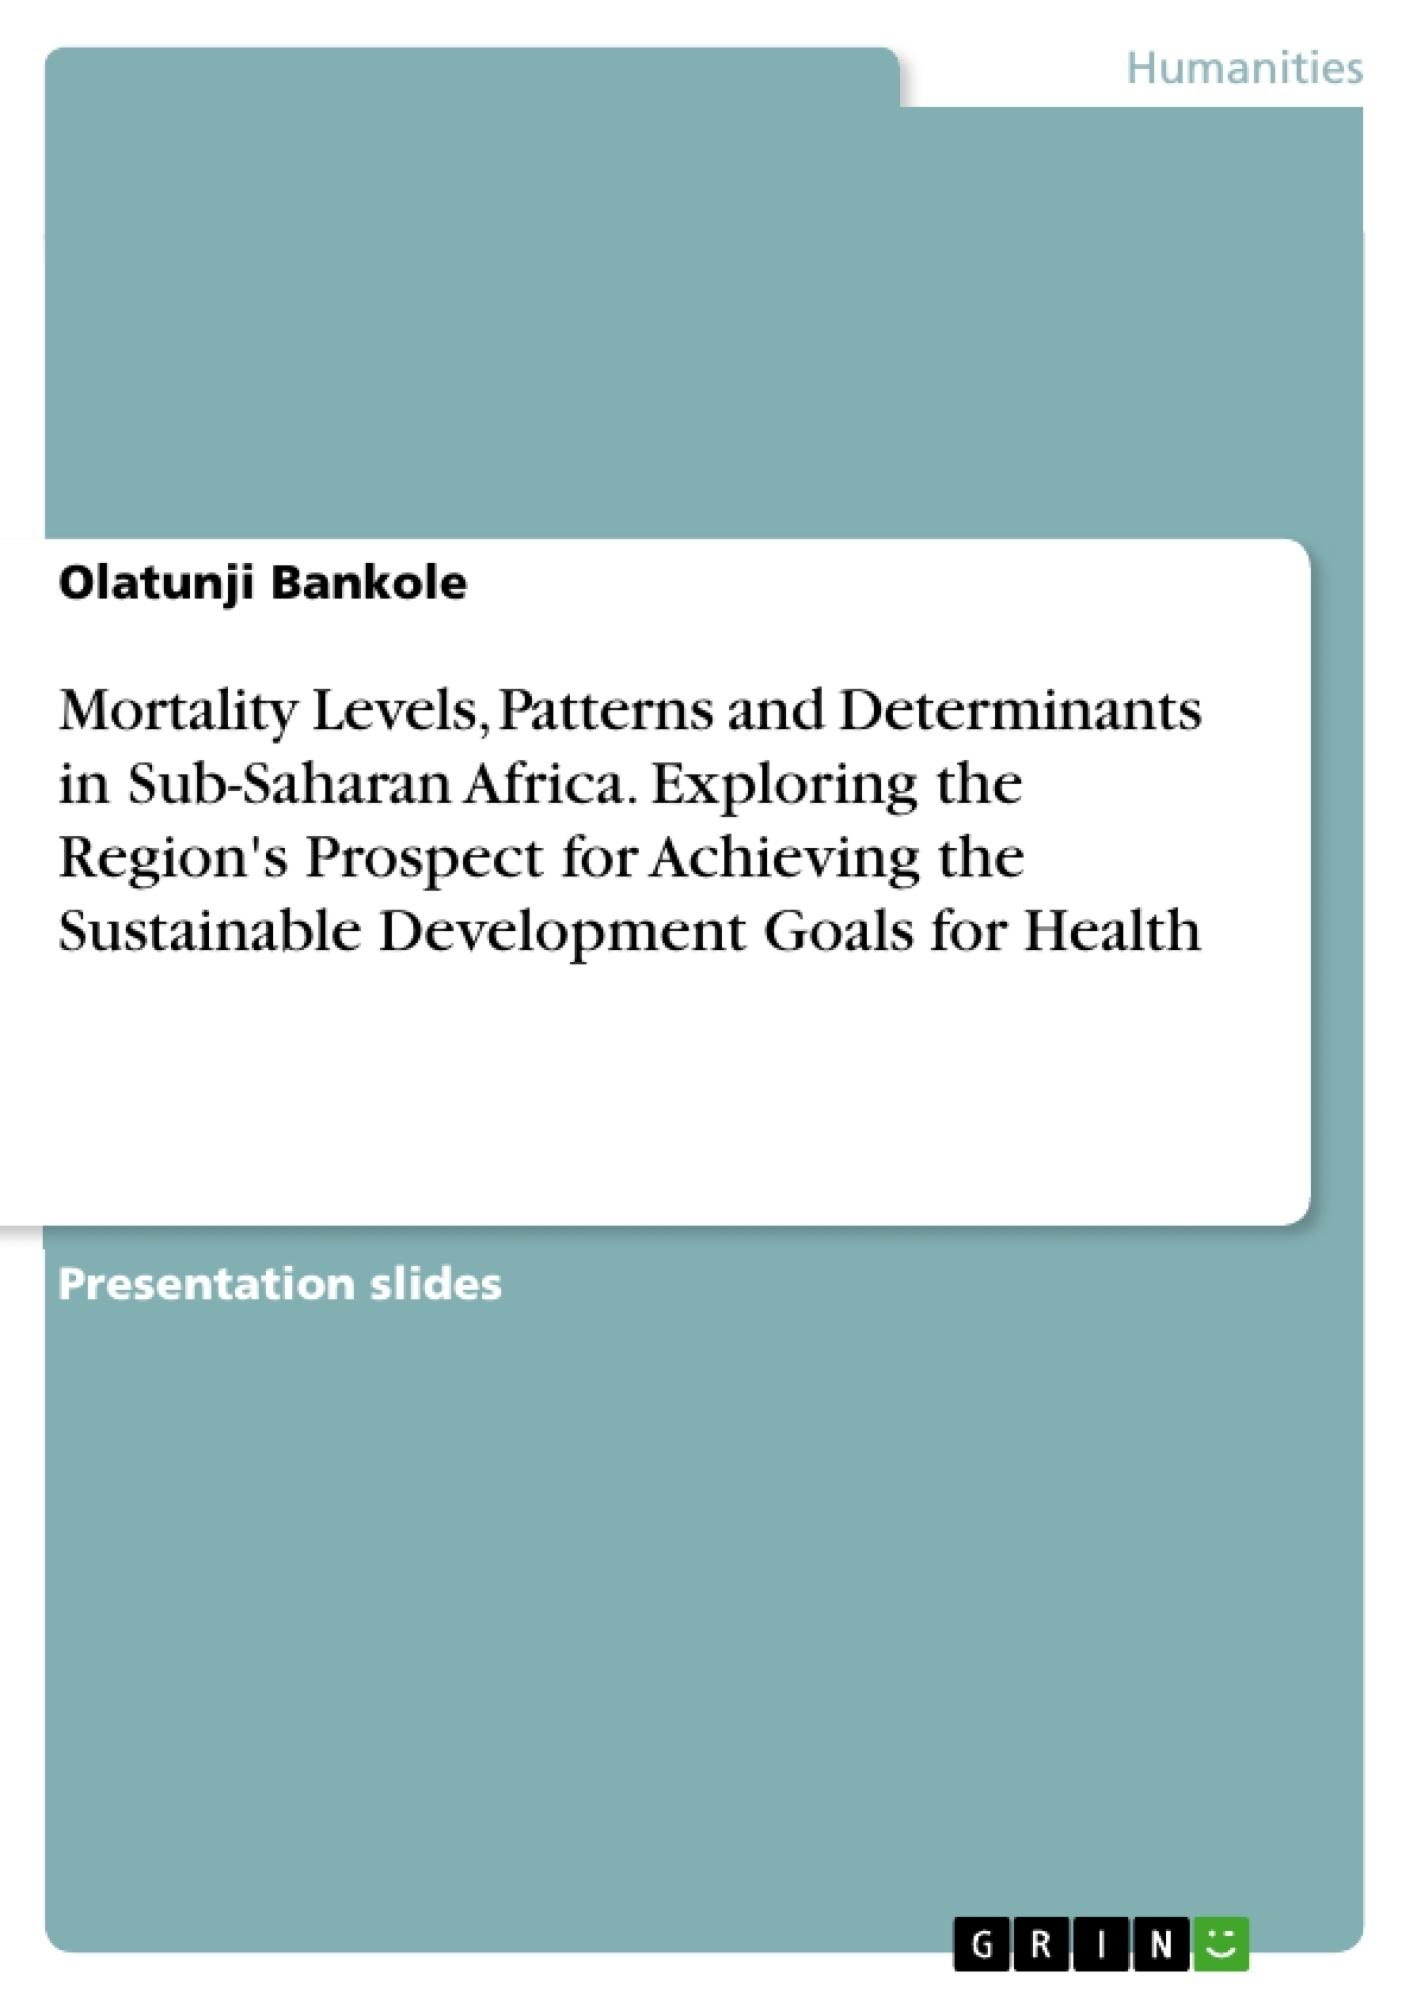 Title: Mortality Levels, Patterns and Determinants in Sub-Saharan Africa. Exploring the Region's Prospect for Achieving the Sustainable Development Goals for Health